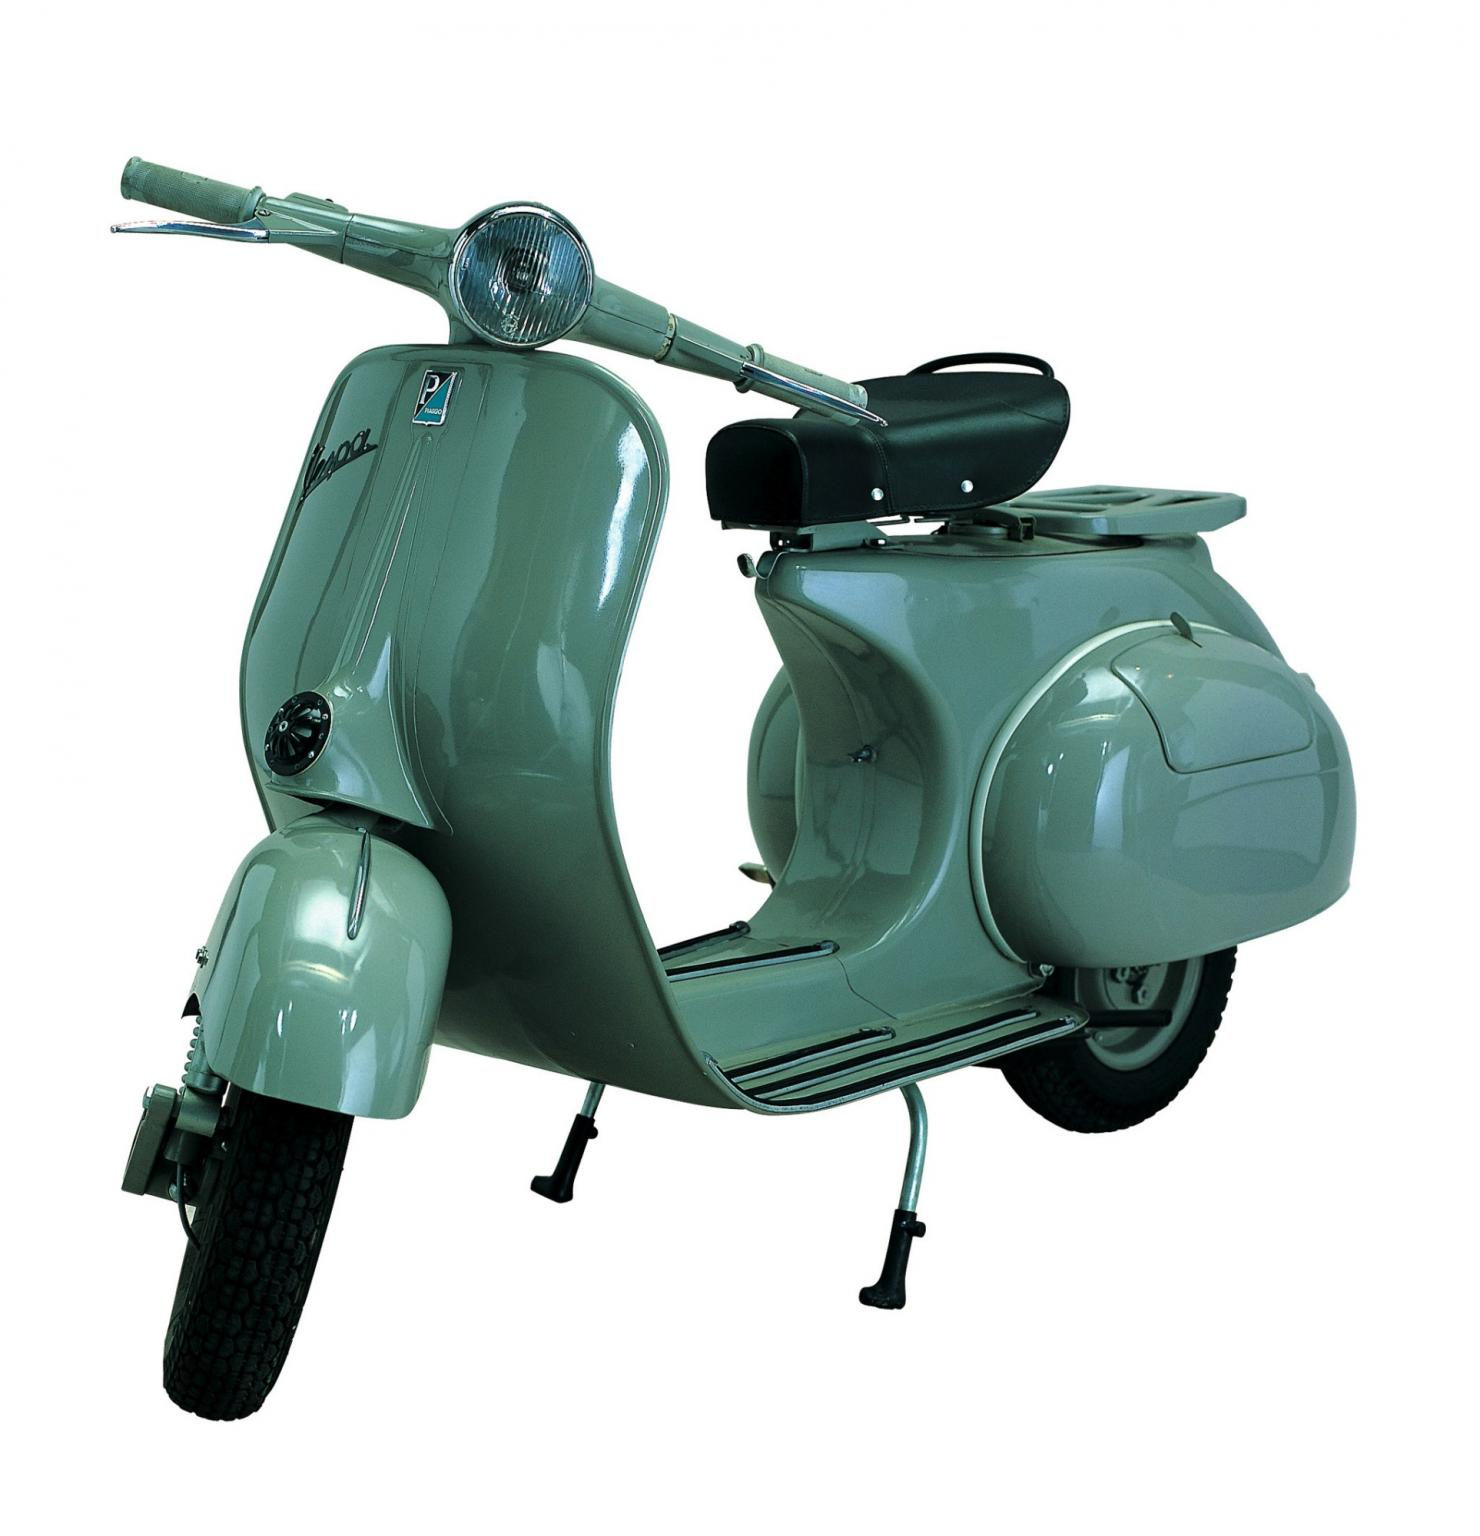 vespa 70 jahre geschichte motorrad fotos motorrad bilder. Black Bedroom Furniture Sets. Home Design Ideas